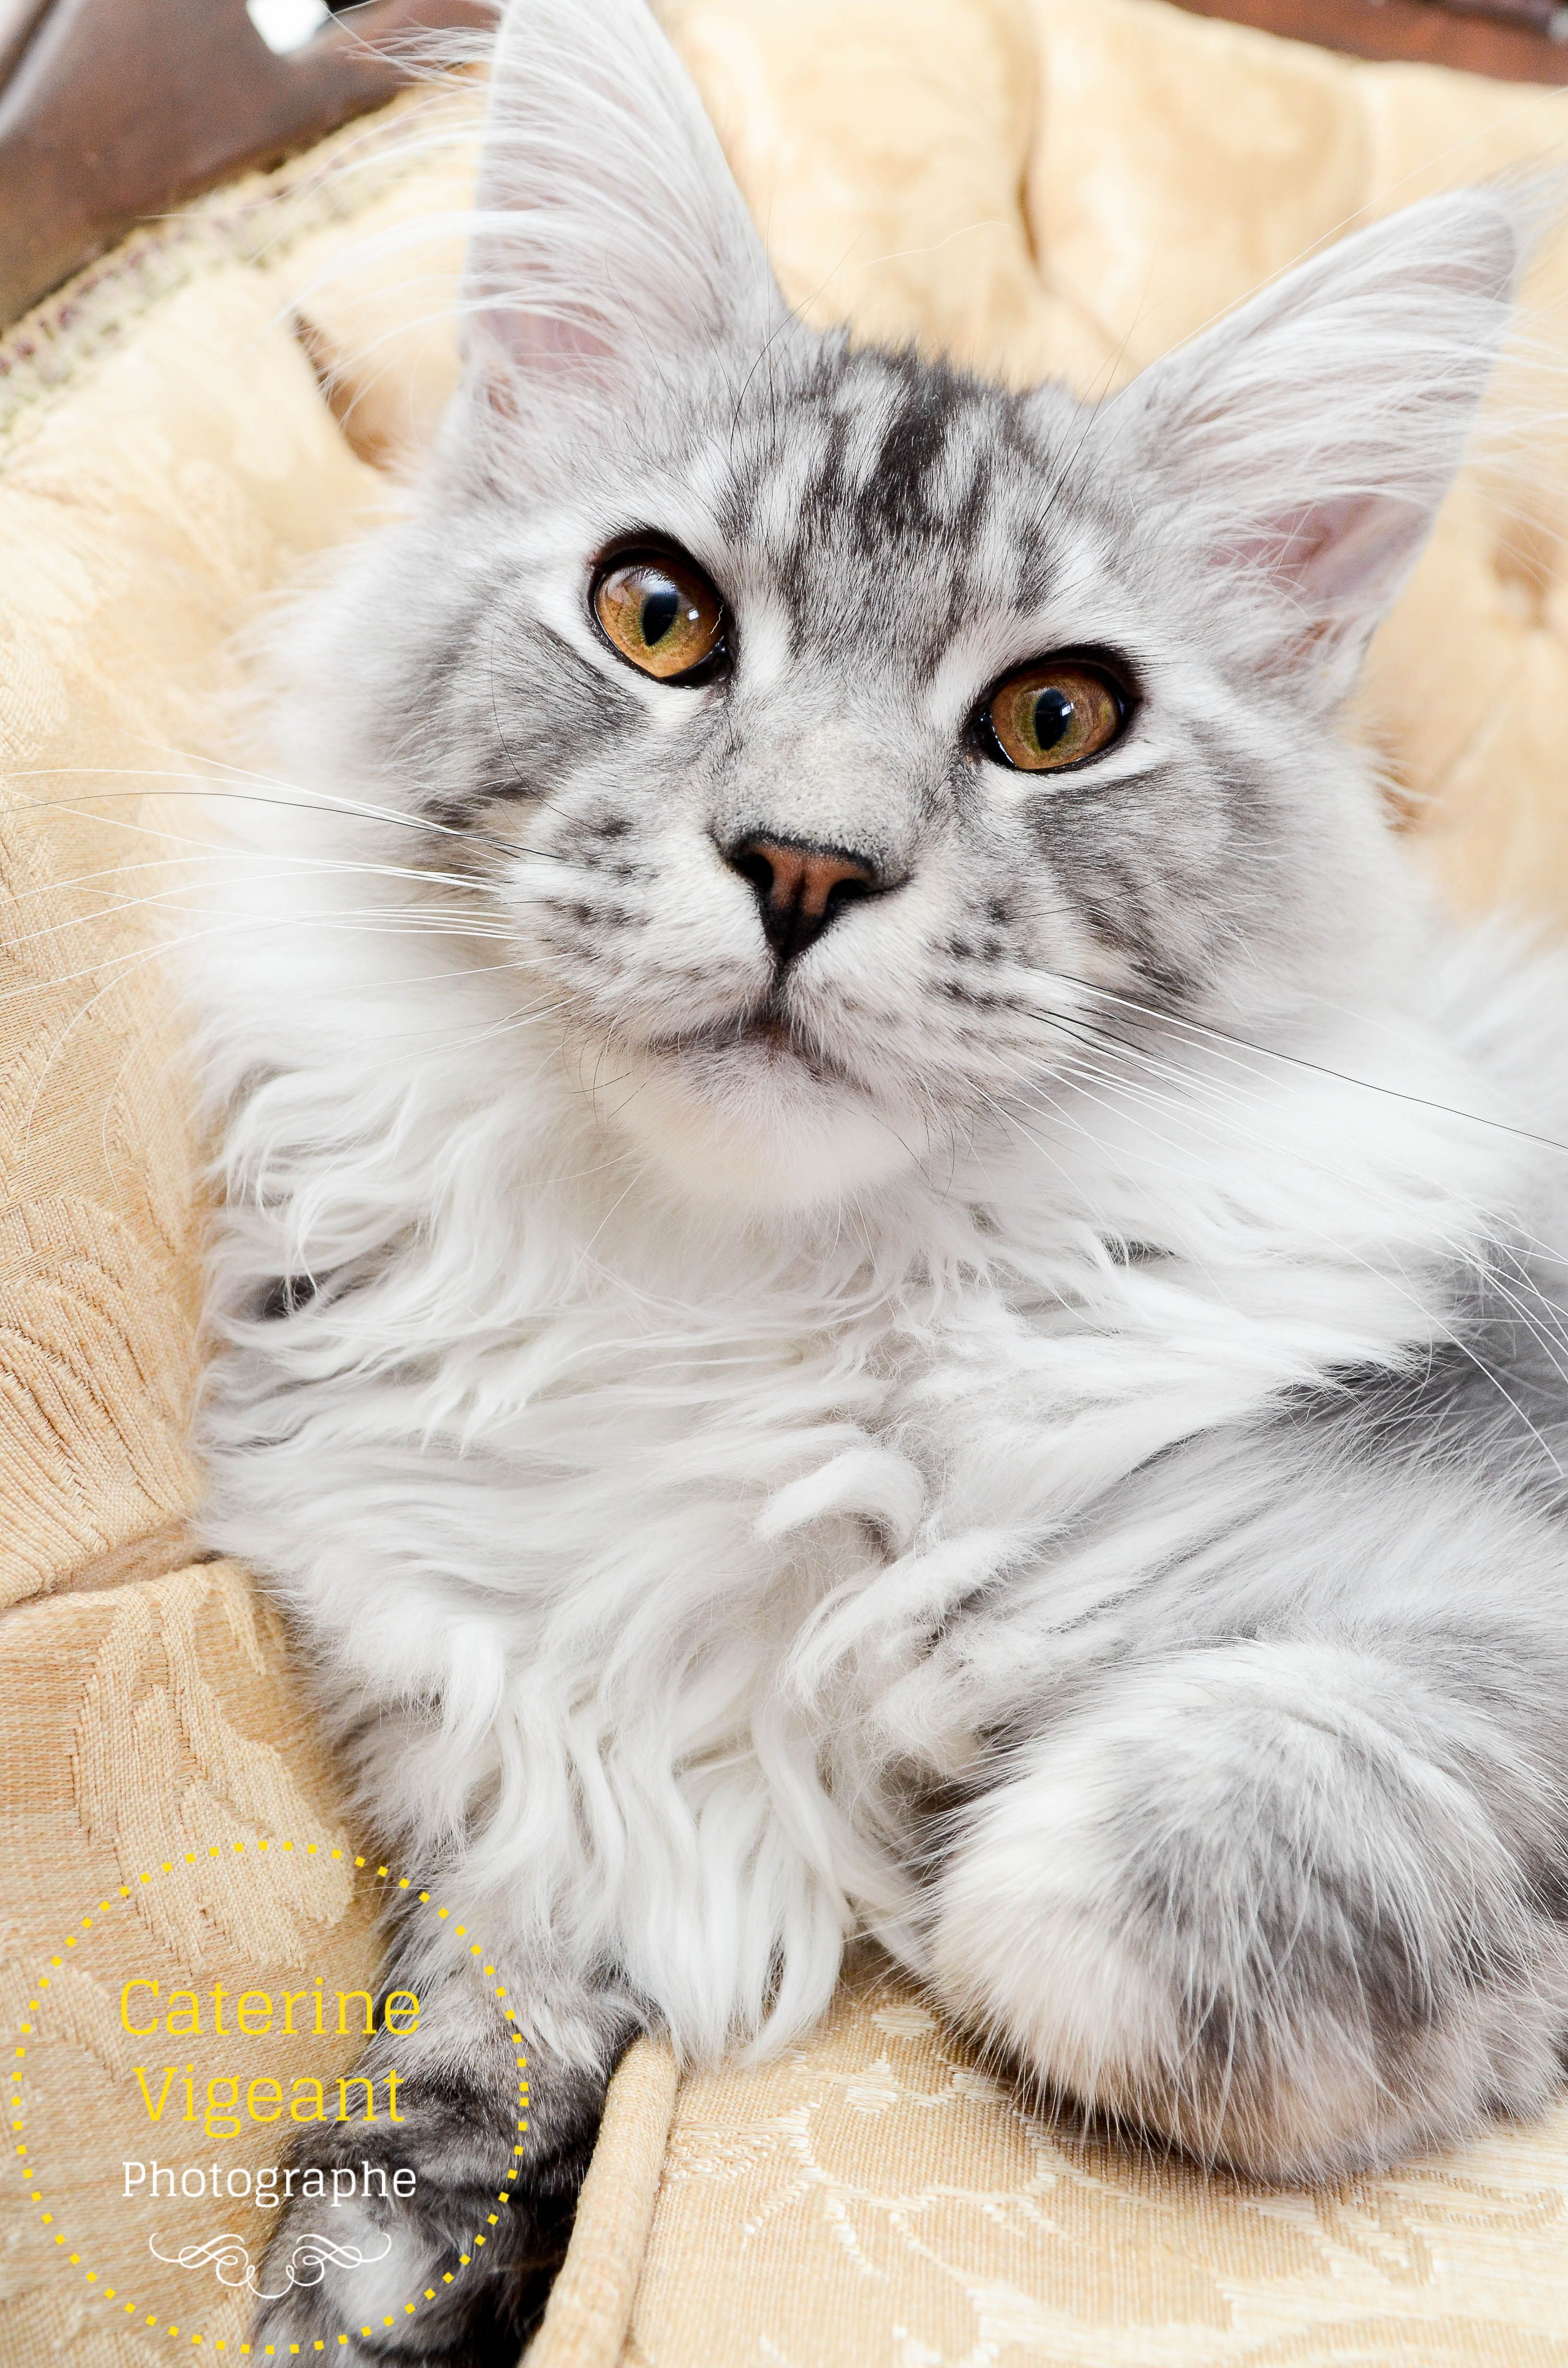 Park Art My WordPress Blog_How Much Does It Cost To Buy A Maine Coon Kitten